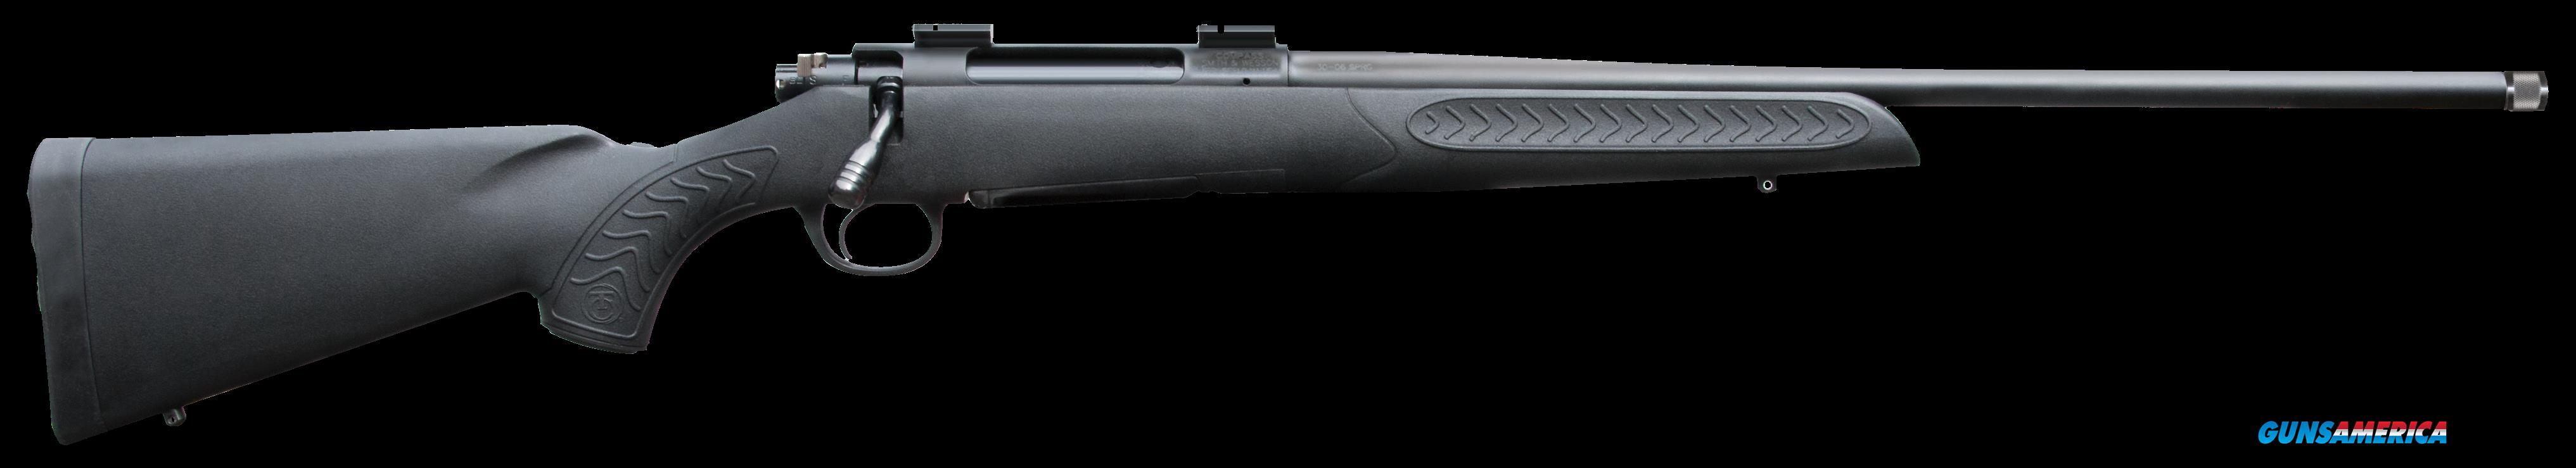 "T/C Arms 10072 Compass Composite Bolt 243 Winchester 22"" 5+1 Synthetic Black Stk Blued  Guns > Rifles > TU Misc Rifles"